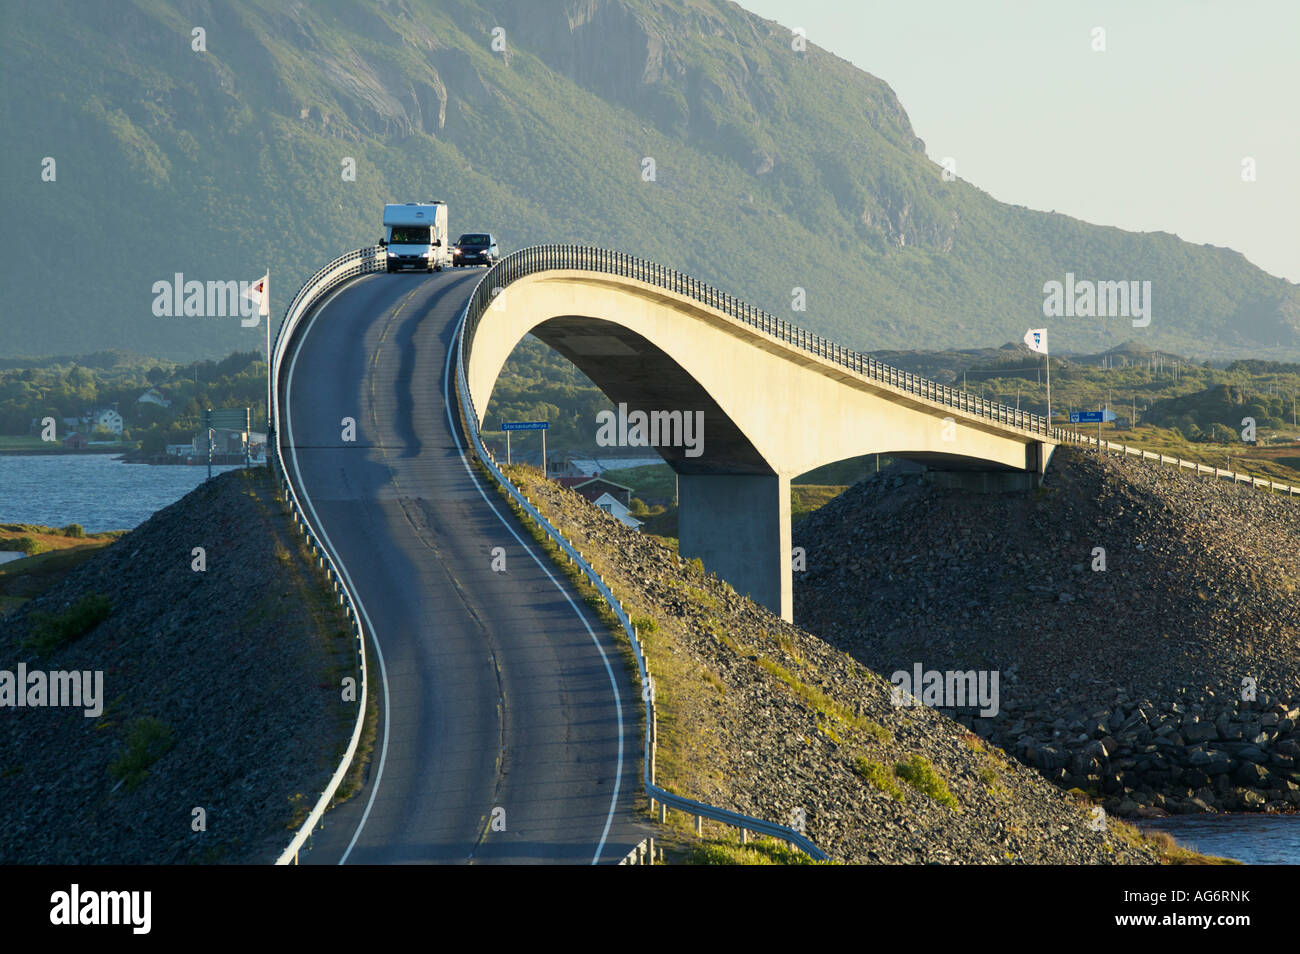 The Atlantic Road More og Romsdal Norway With a car on the ...